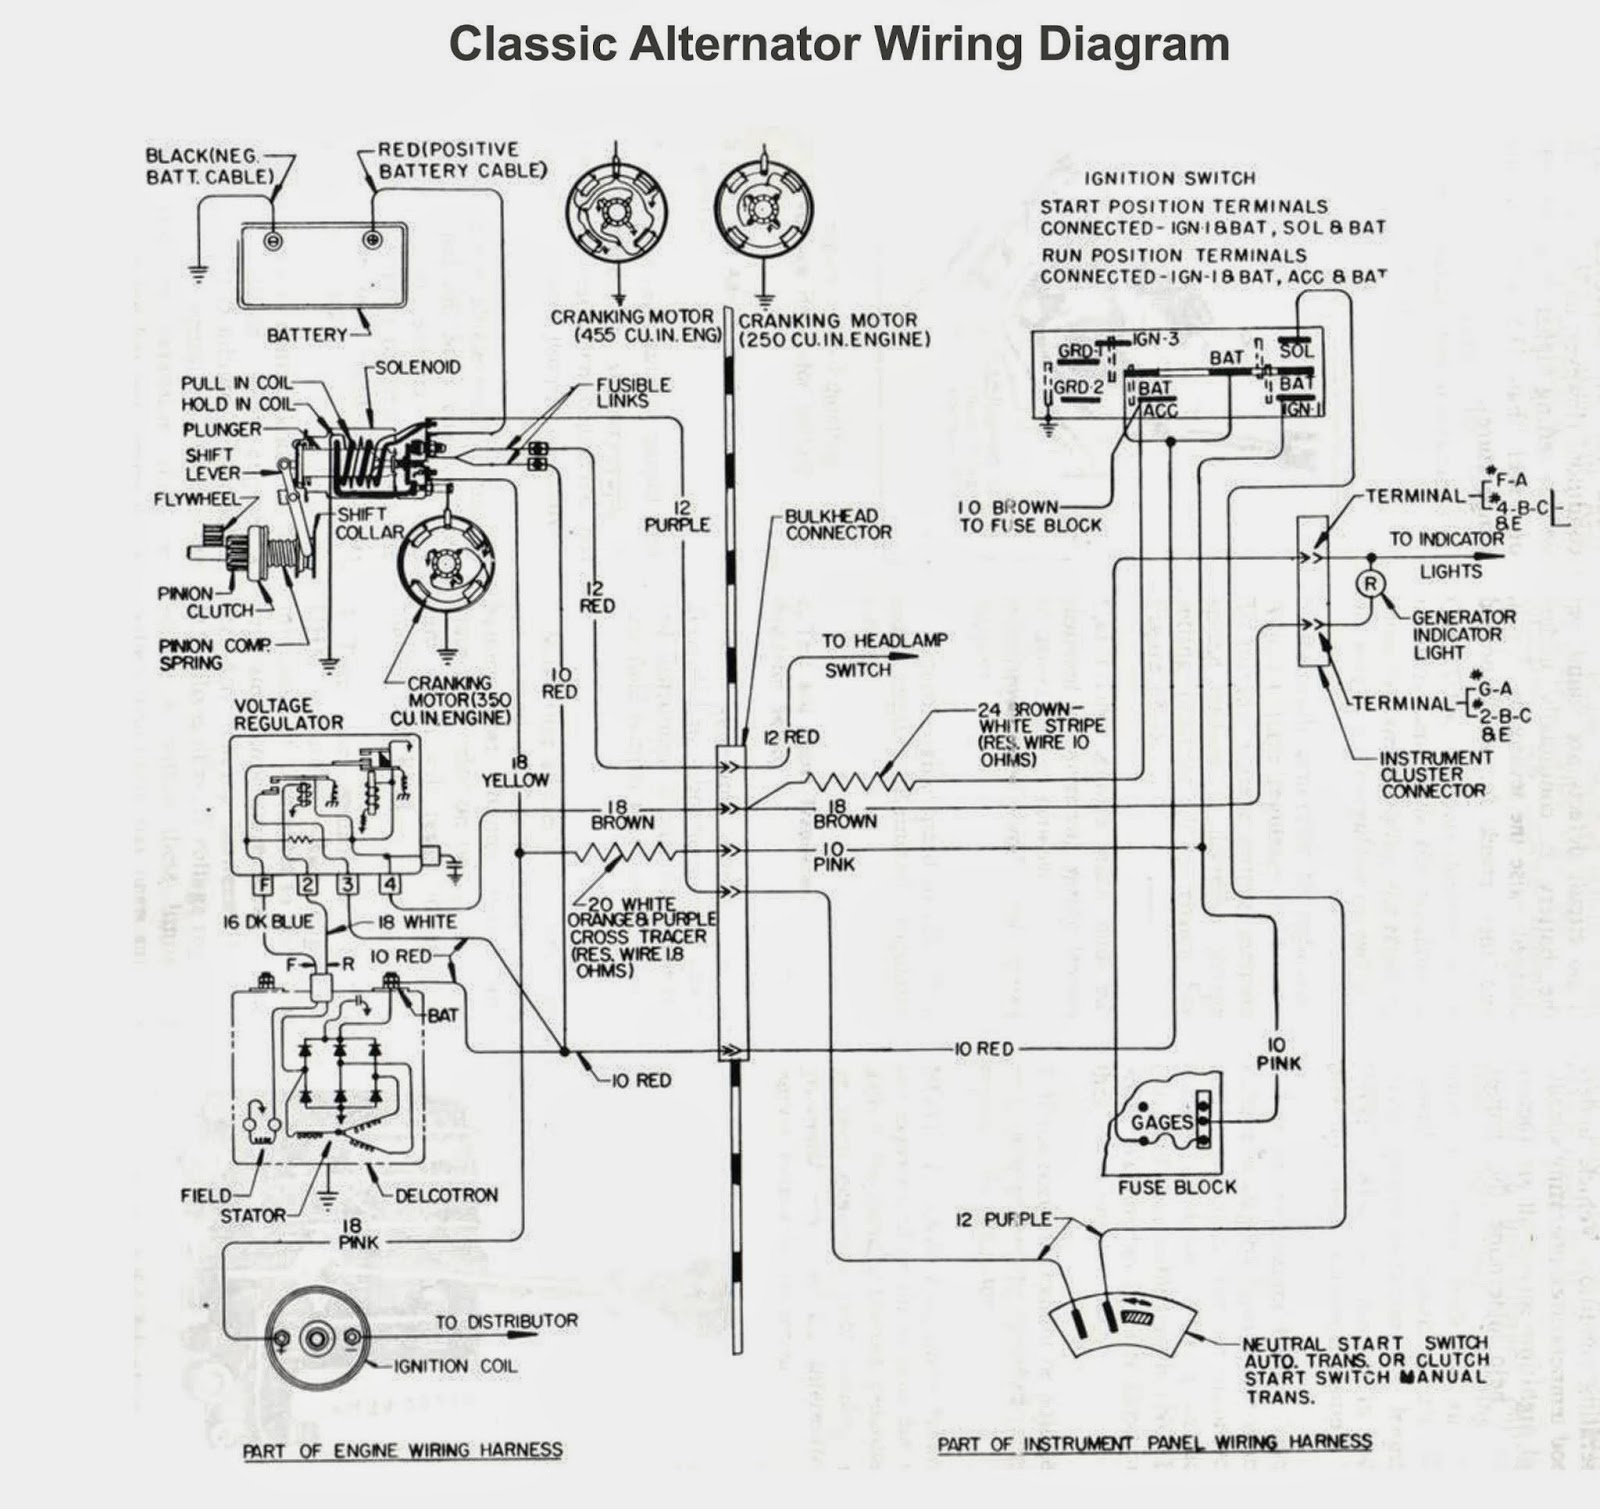 1985 chevy suburban wiring diagram html with Old Car Alternator Wiring Diagram on Old Car Alternator Wiring Diagram likewise 93 Gm Steering Column Diagram Html additionally 4b91h Changed Radio 1998 Chevy S 10 When Think together with Chevrolet El Camino 3 8 1982 Specs And Images moreover 1964335 Brake Line Routing.